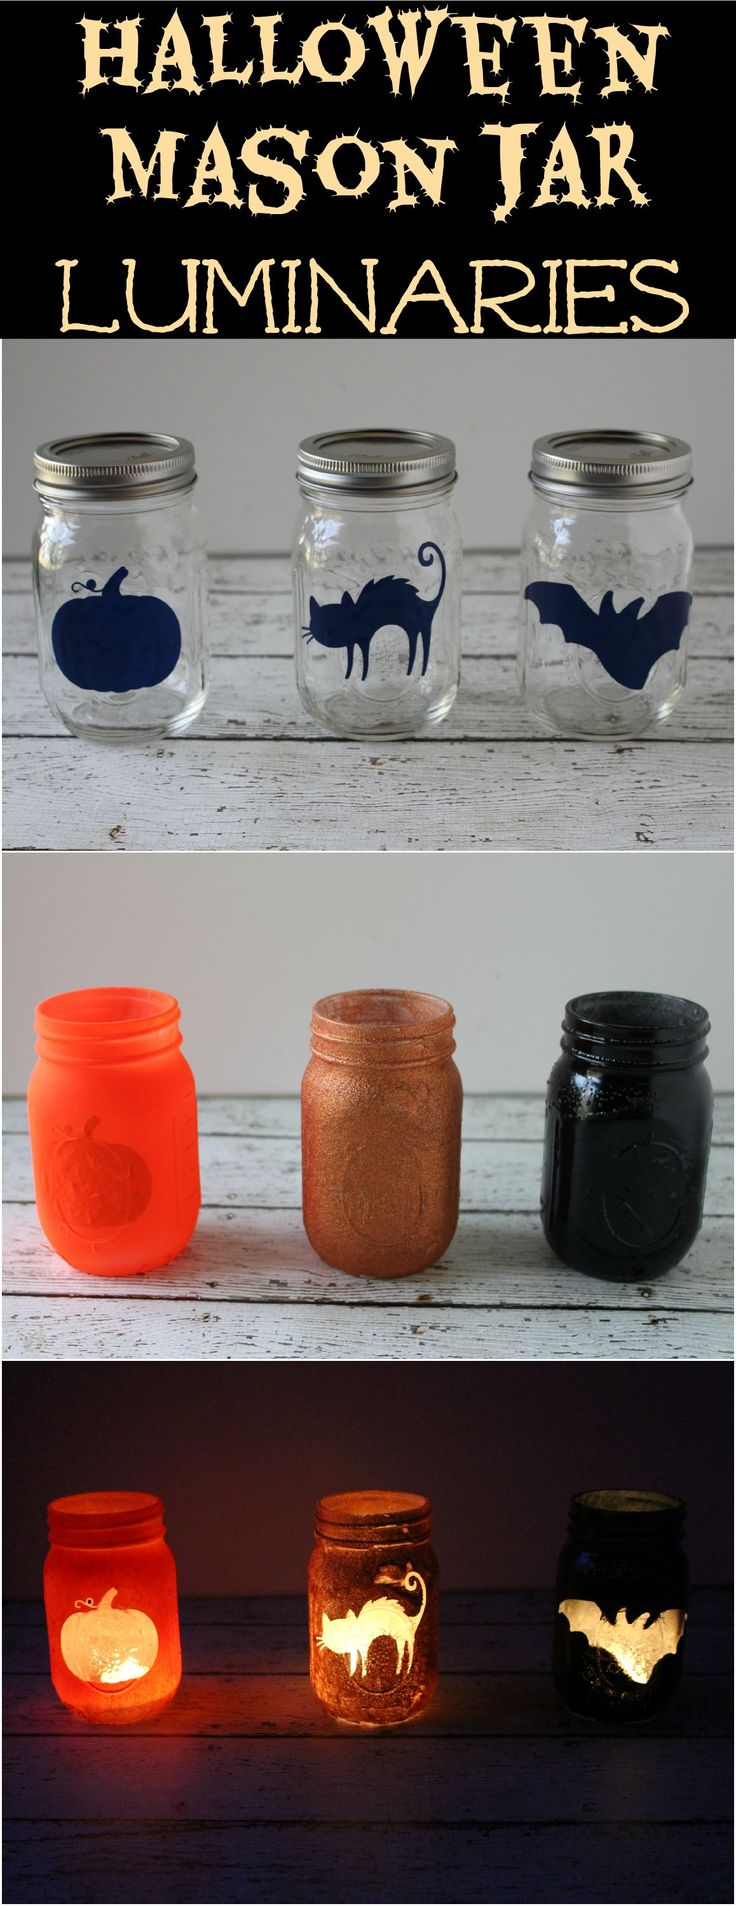 Diy halloween decorations - Halloween Mason Jar Luminaries Page 2 Of 2 Easy Halloween Decorationshalloween Diyhalloween